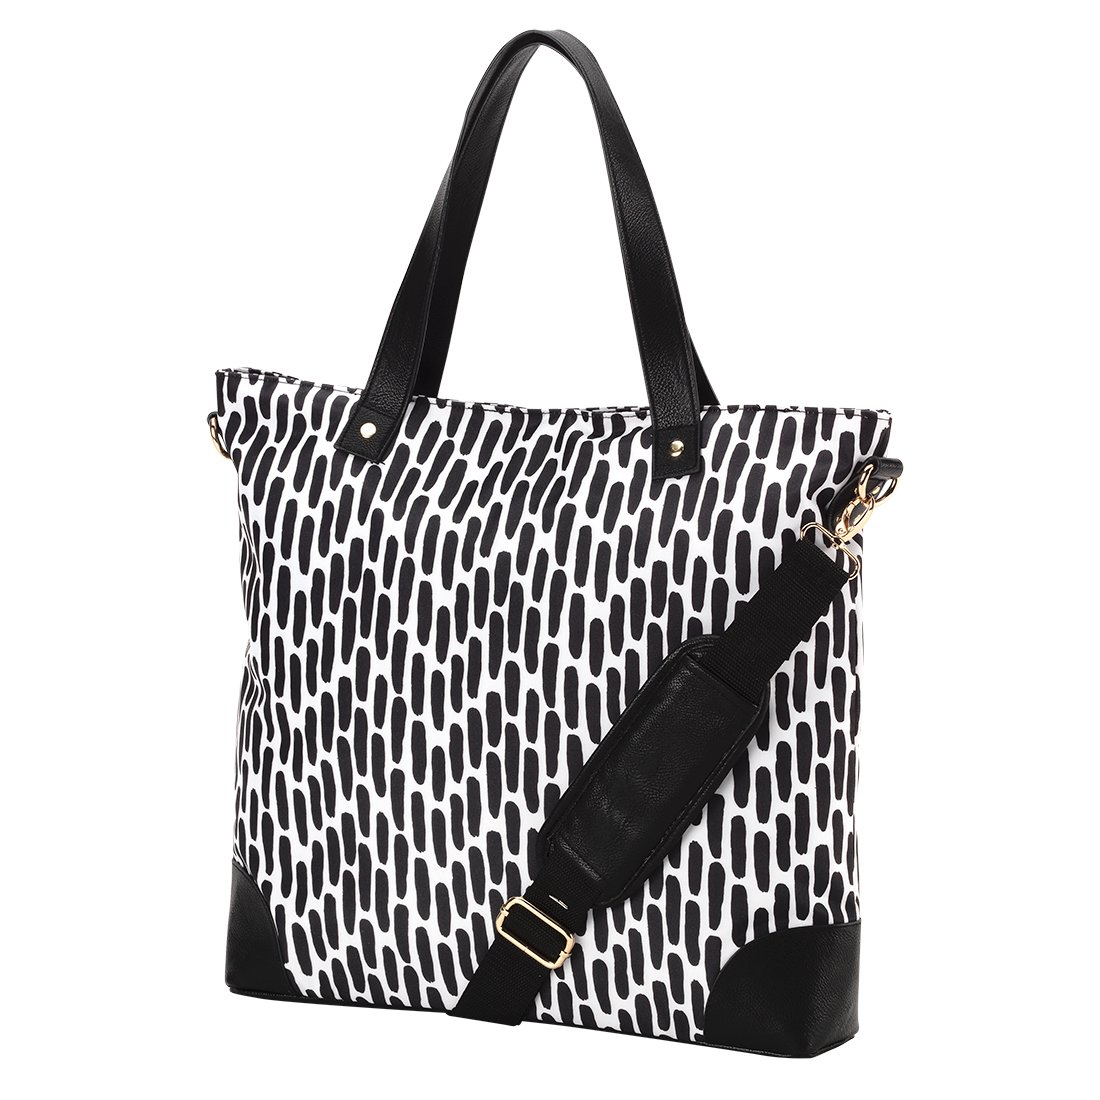 VIV/&LOU Shoulder Tote Bag Faux Leather Trim